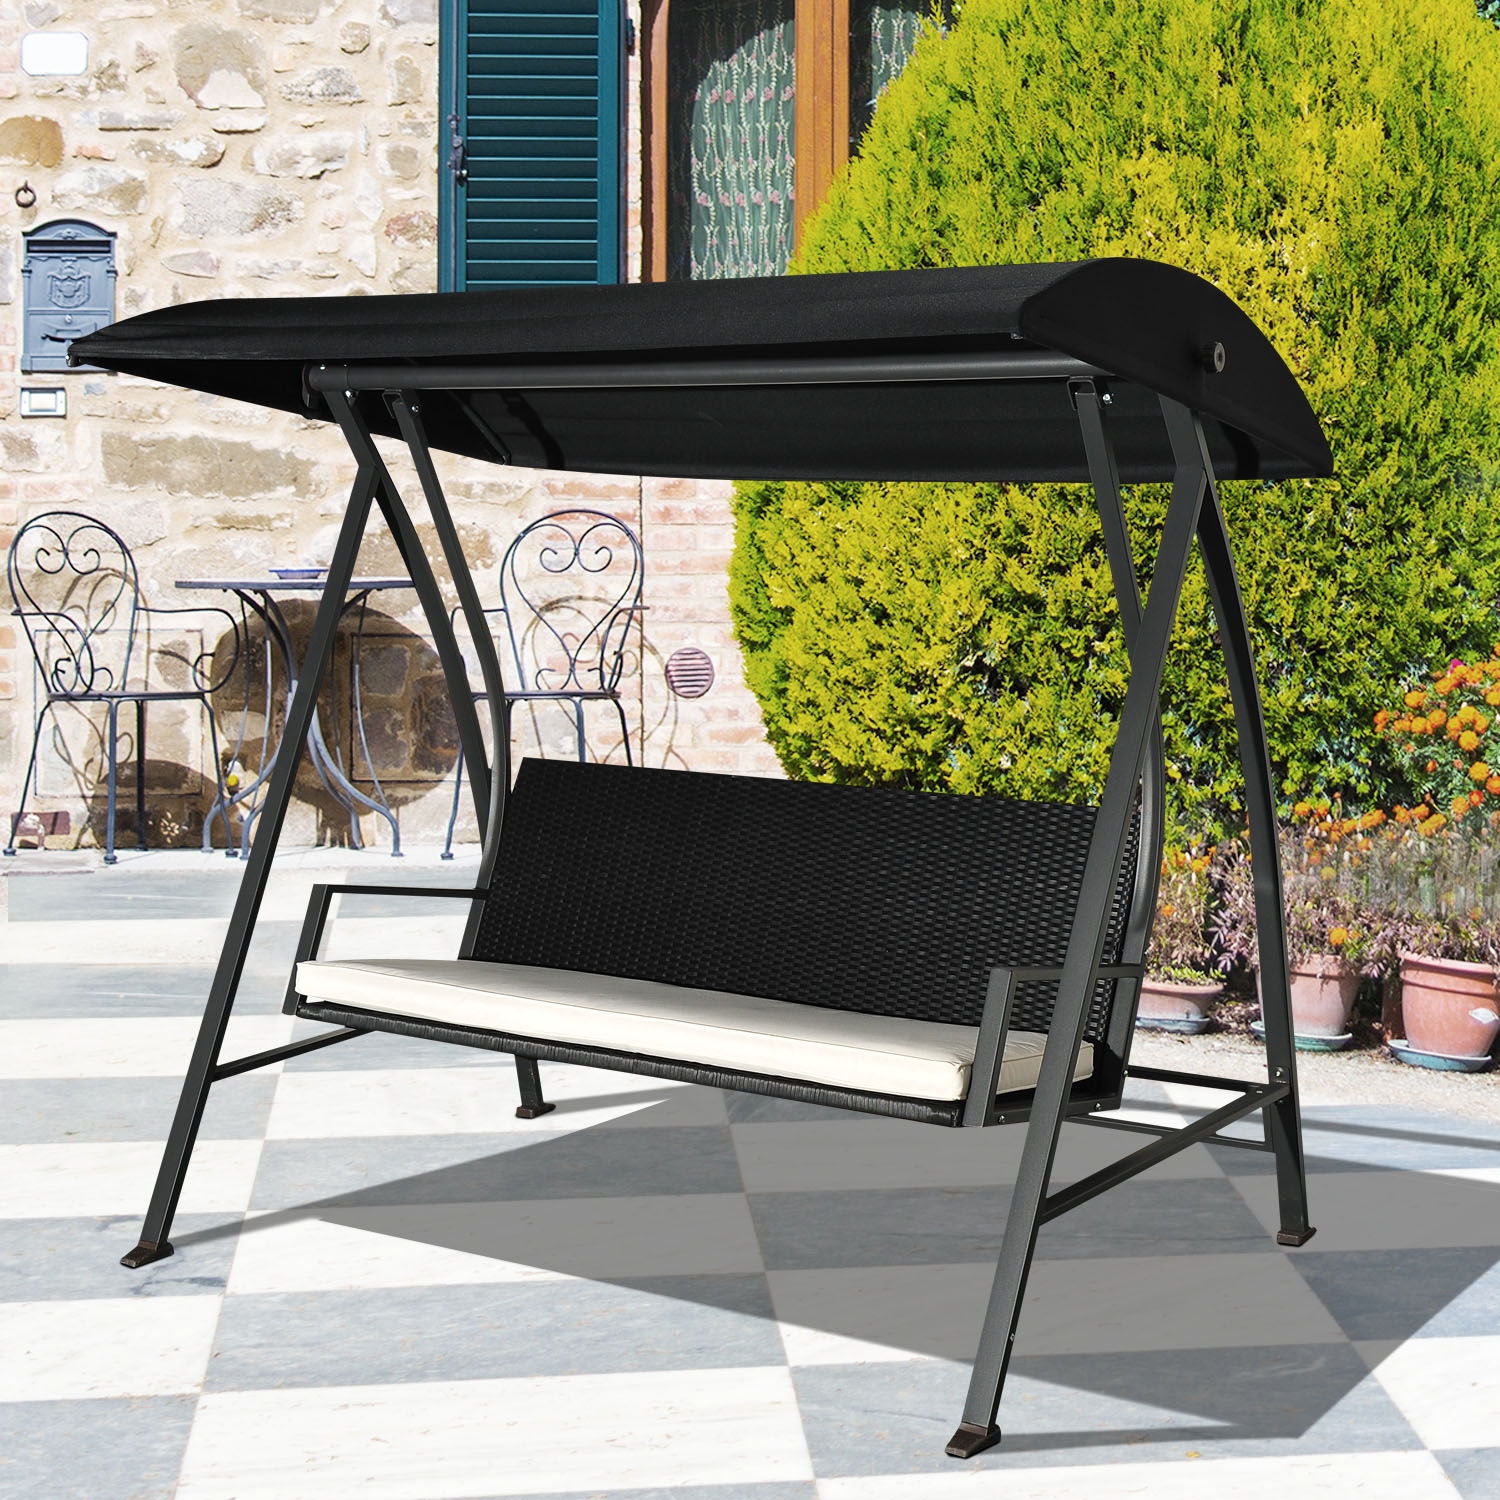 Image of CAD $359.99 Outsunny Outdoor Swing Chair w/ Canopy Sling Hammock / 3 Person Wicker Porch Rattan Patio Lounger Canada 95509799845